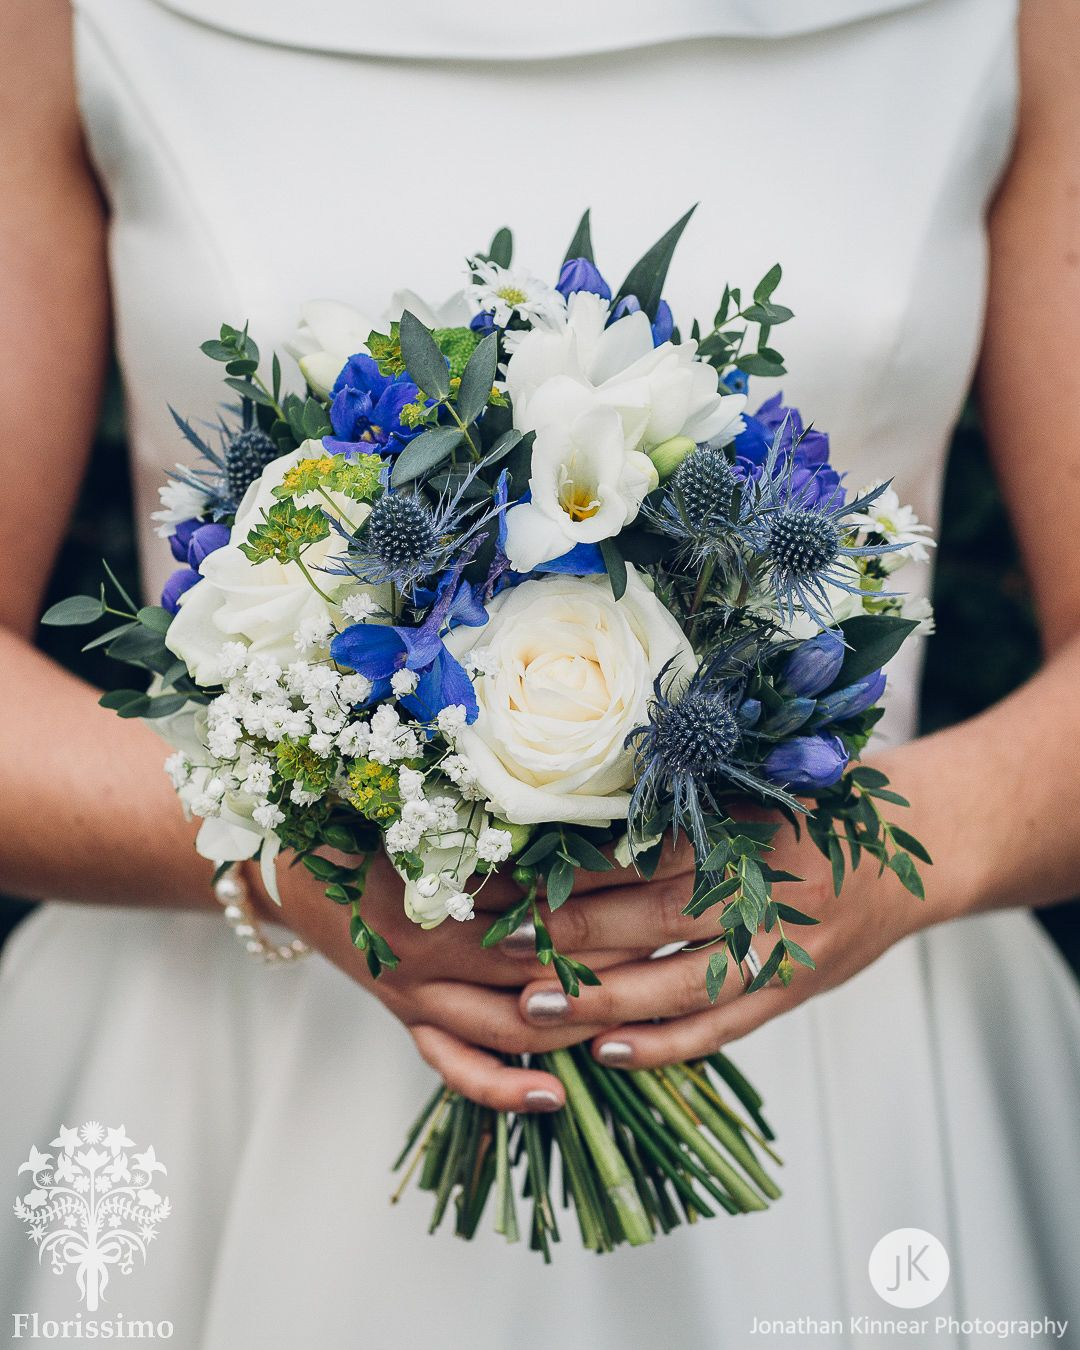 Wedding Bouquets With Blue Flowers: A Dainty, Rustic Bridal Bouquet Of White Avalanche Roses